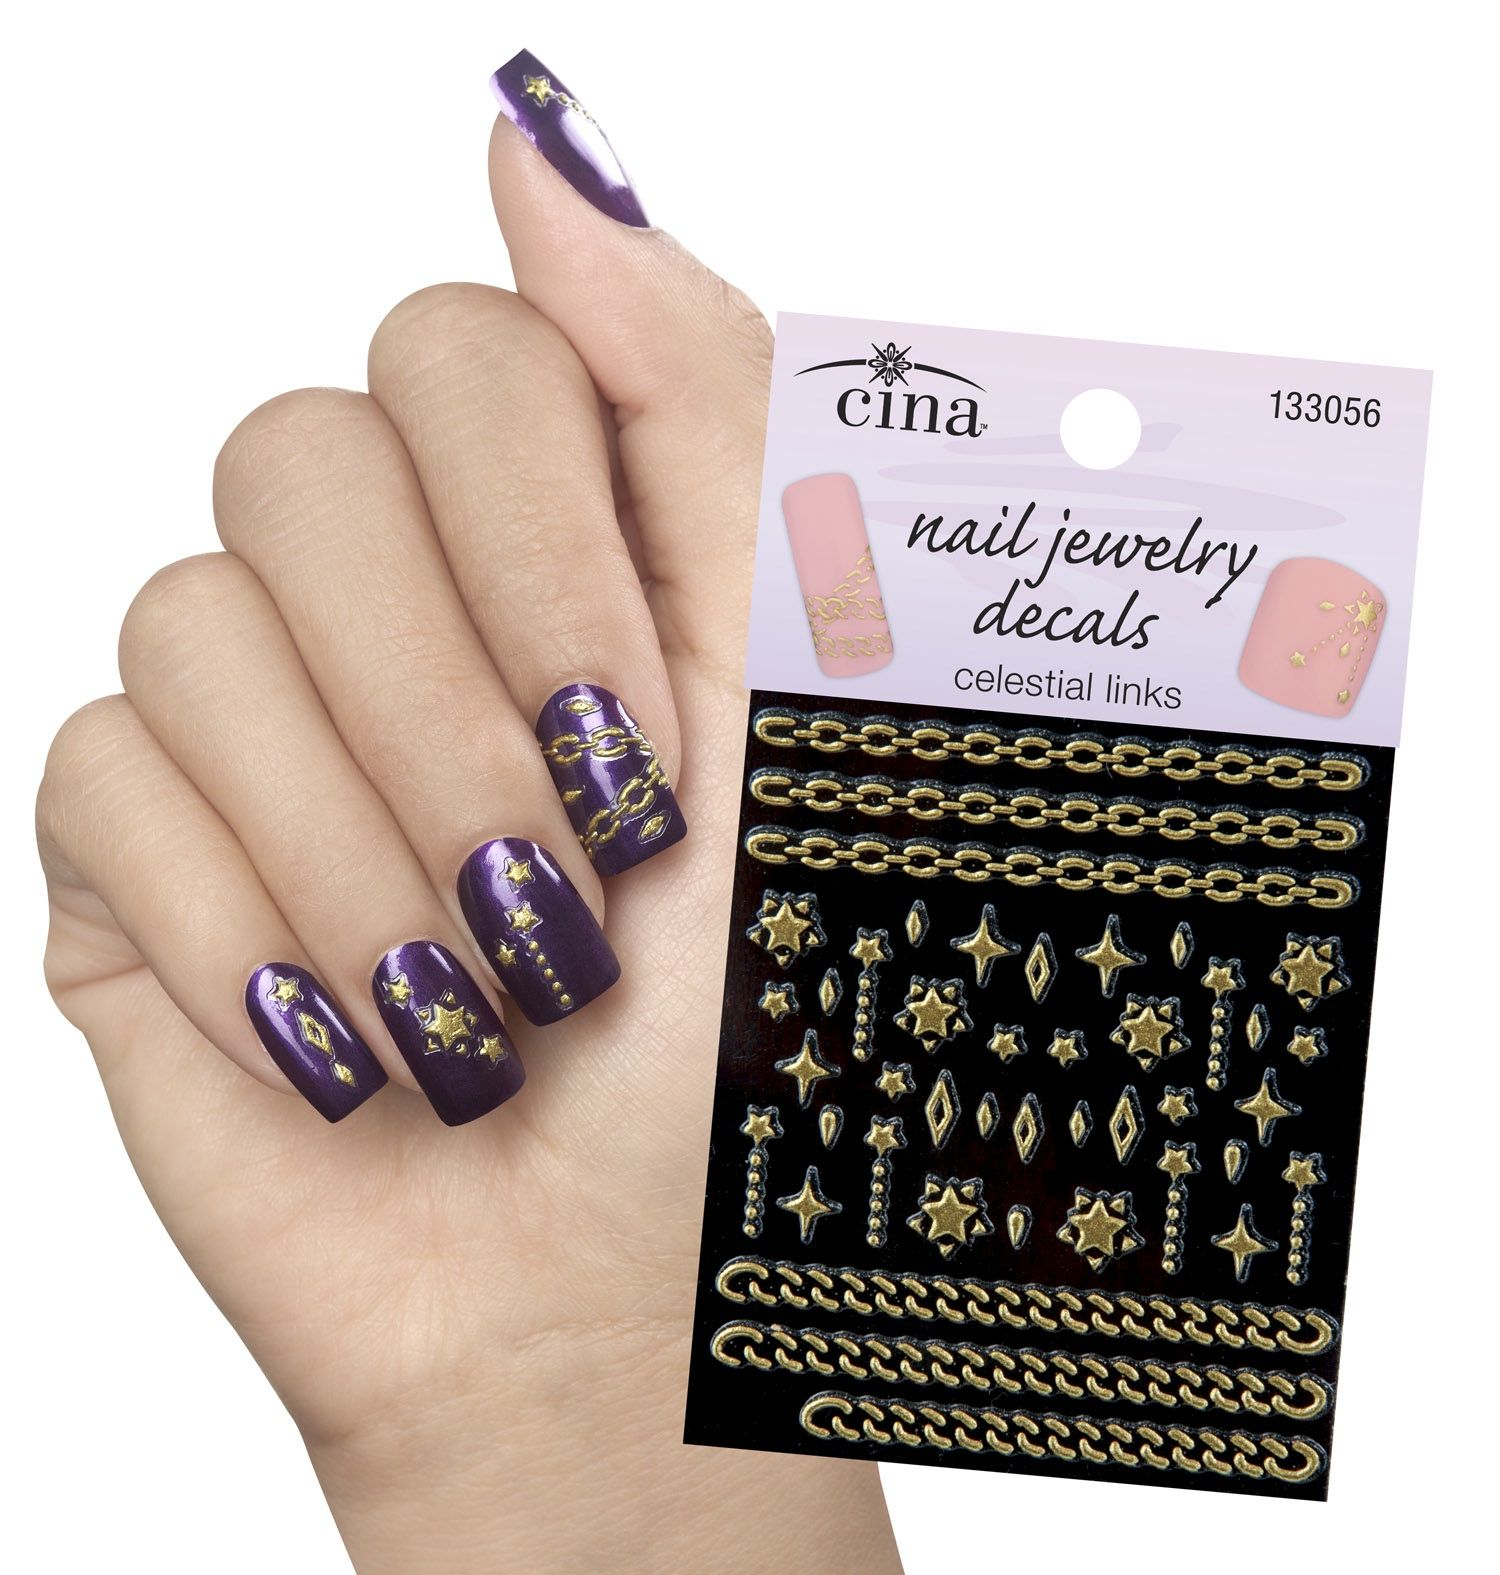 Cina Nail Jewelry Decals Perfect For Galaxy Nails